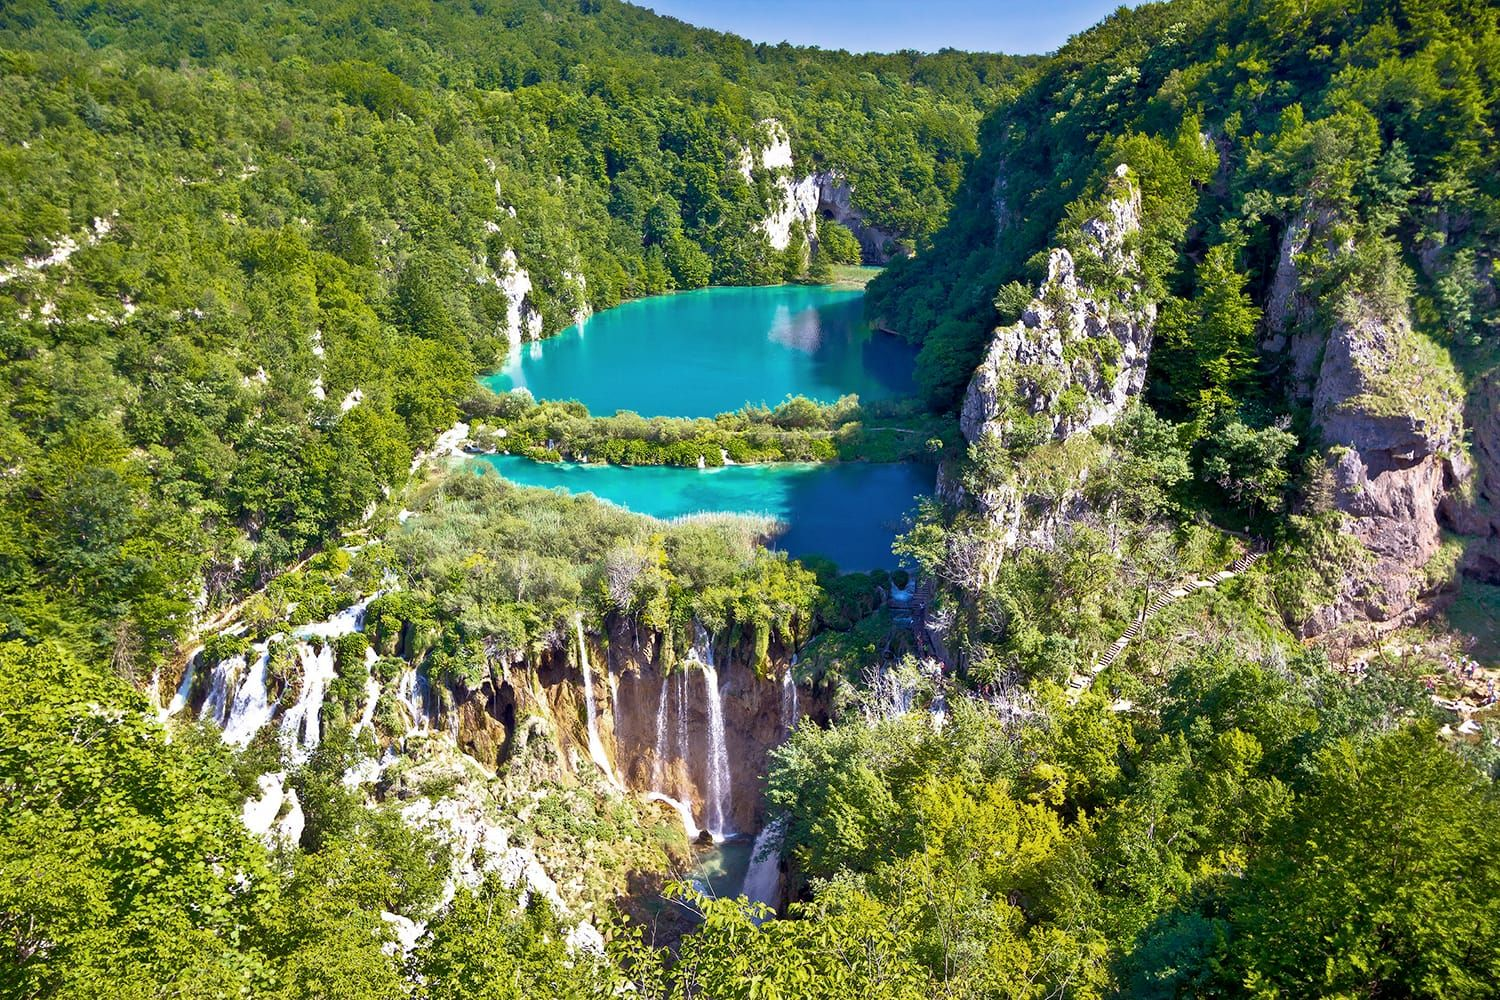 The Ultimate Guide To Visiting Plitvice Lakes National Park Road Affair Plitvice National Park Plitvice Lakes Plitvice Lakes National Park